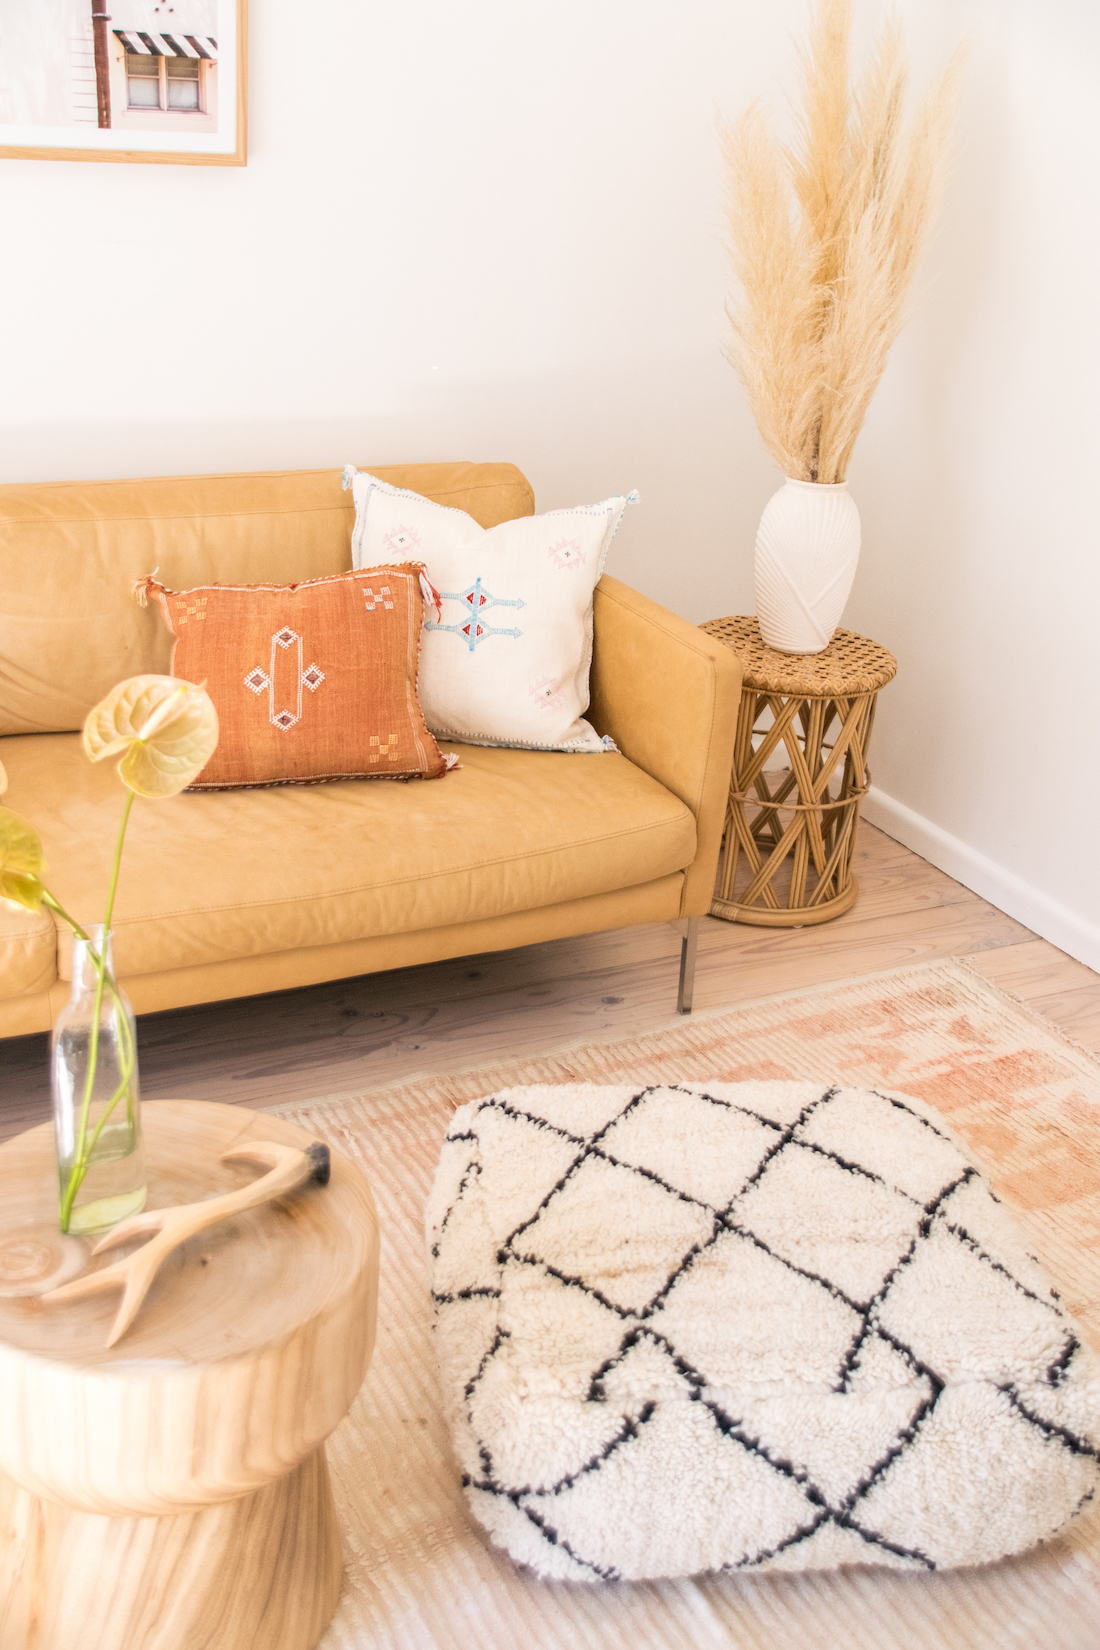 Living room styled with Moroccan homewares